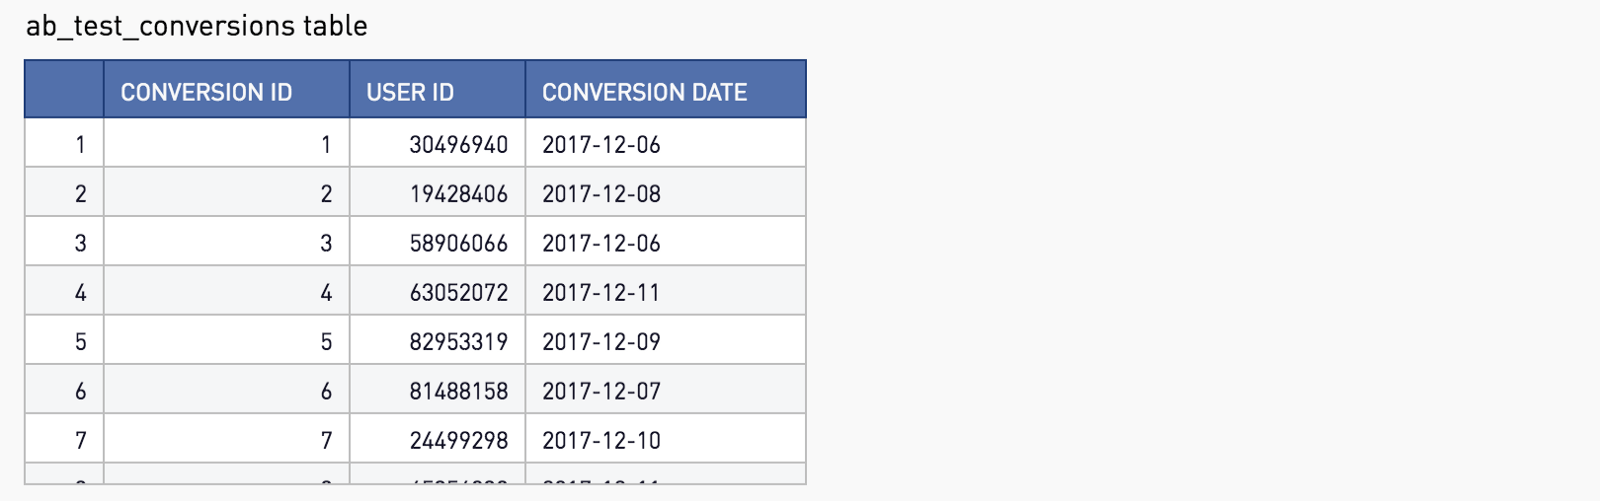 hight resolution of ab test conversions